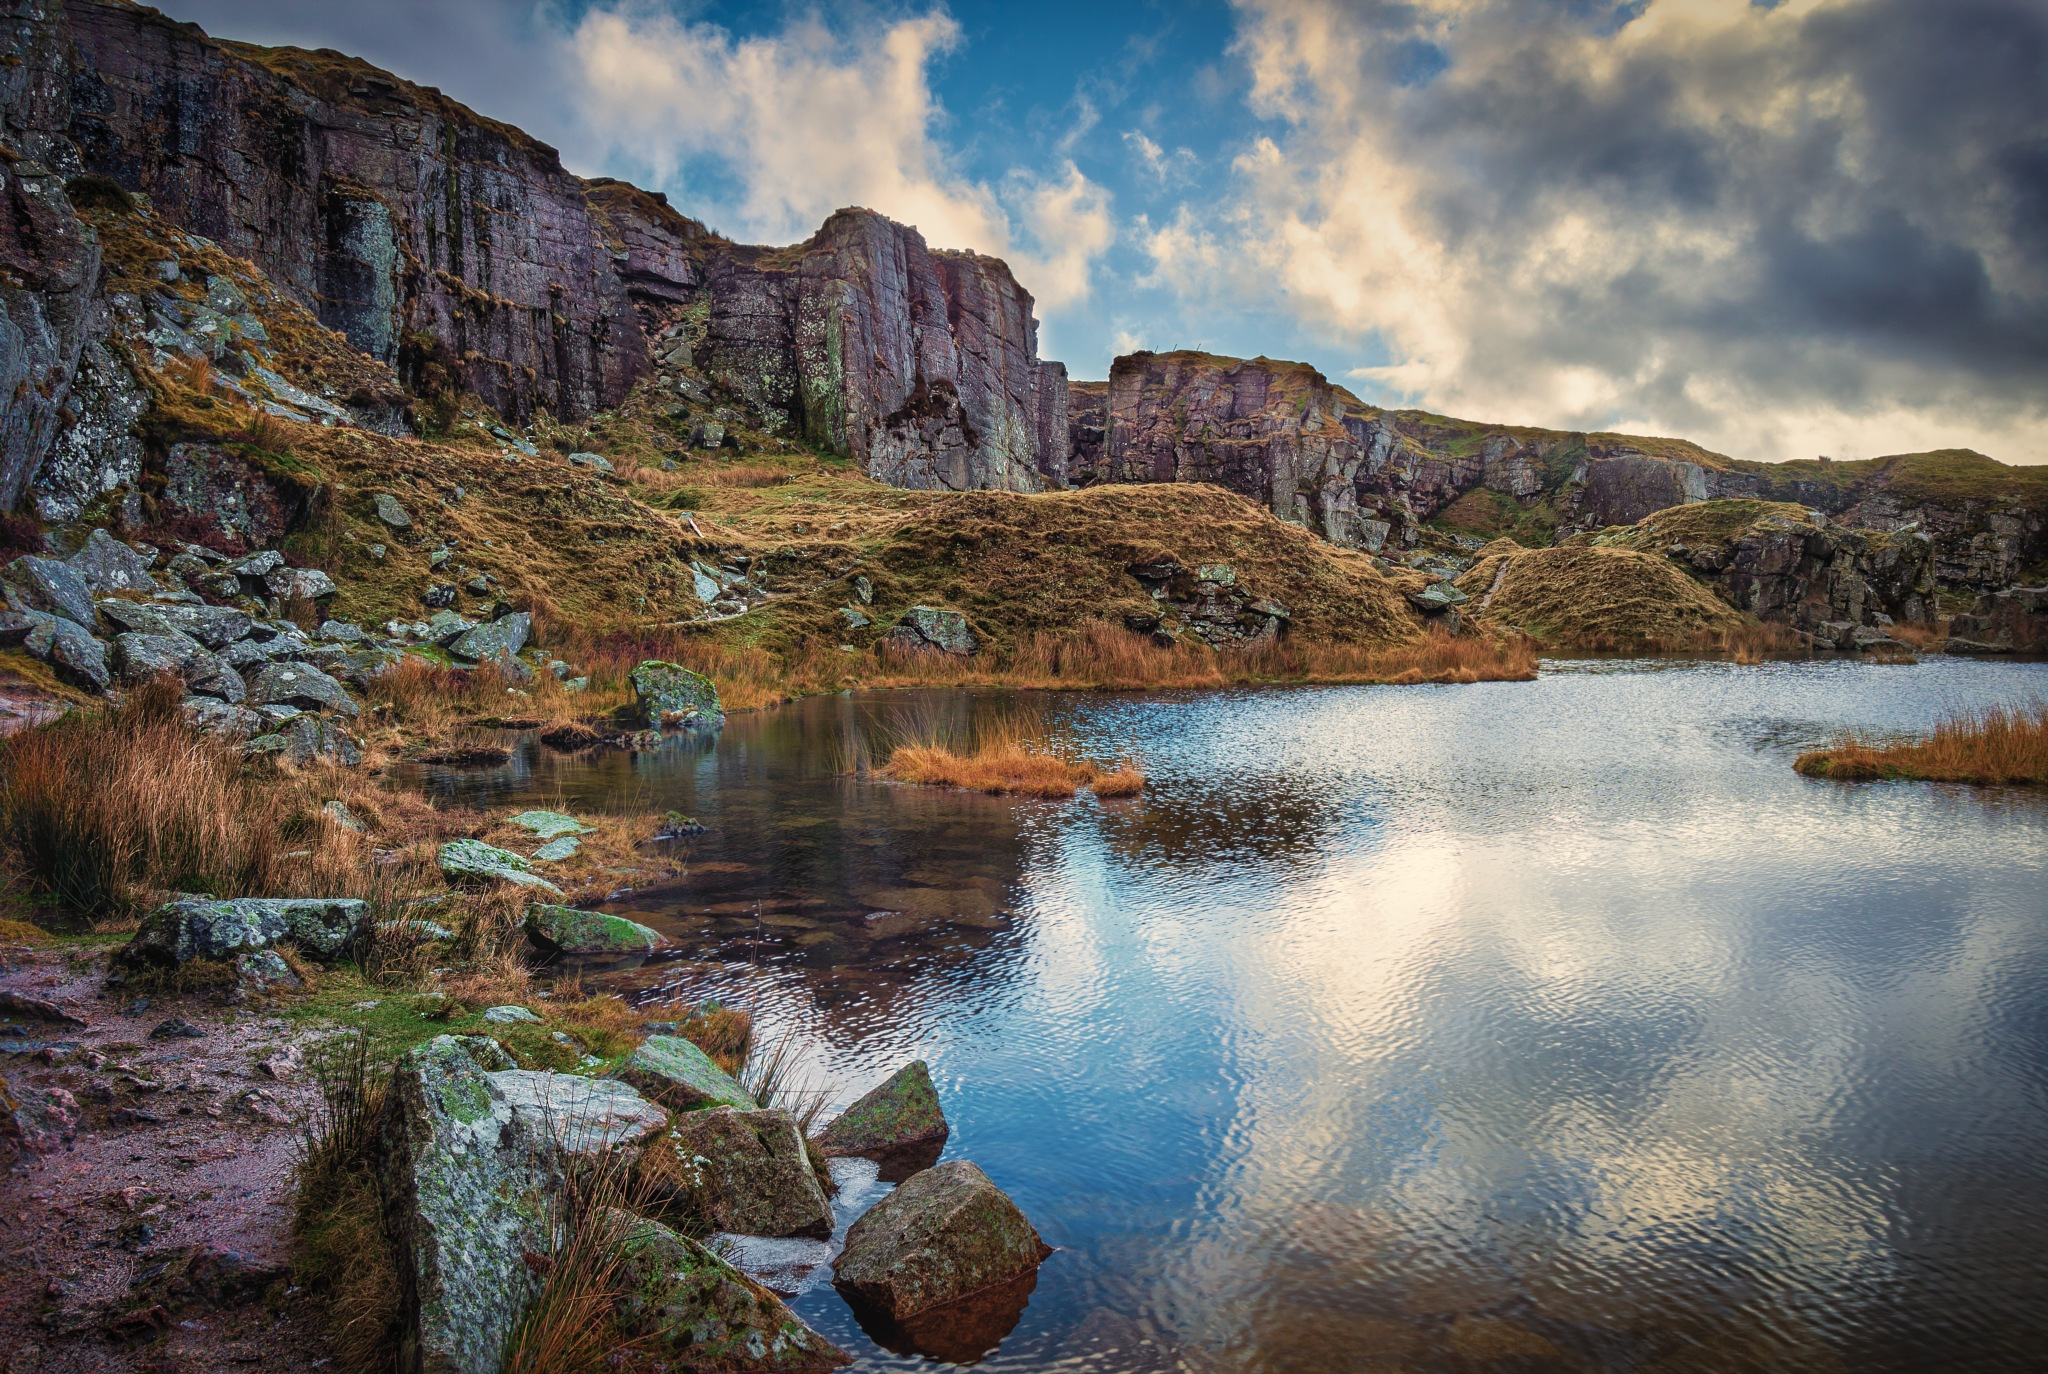 Deep in the quarry by Phil Morgan